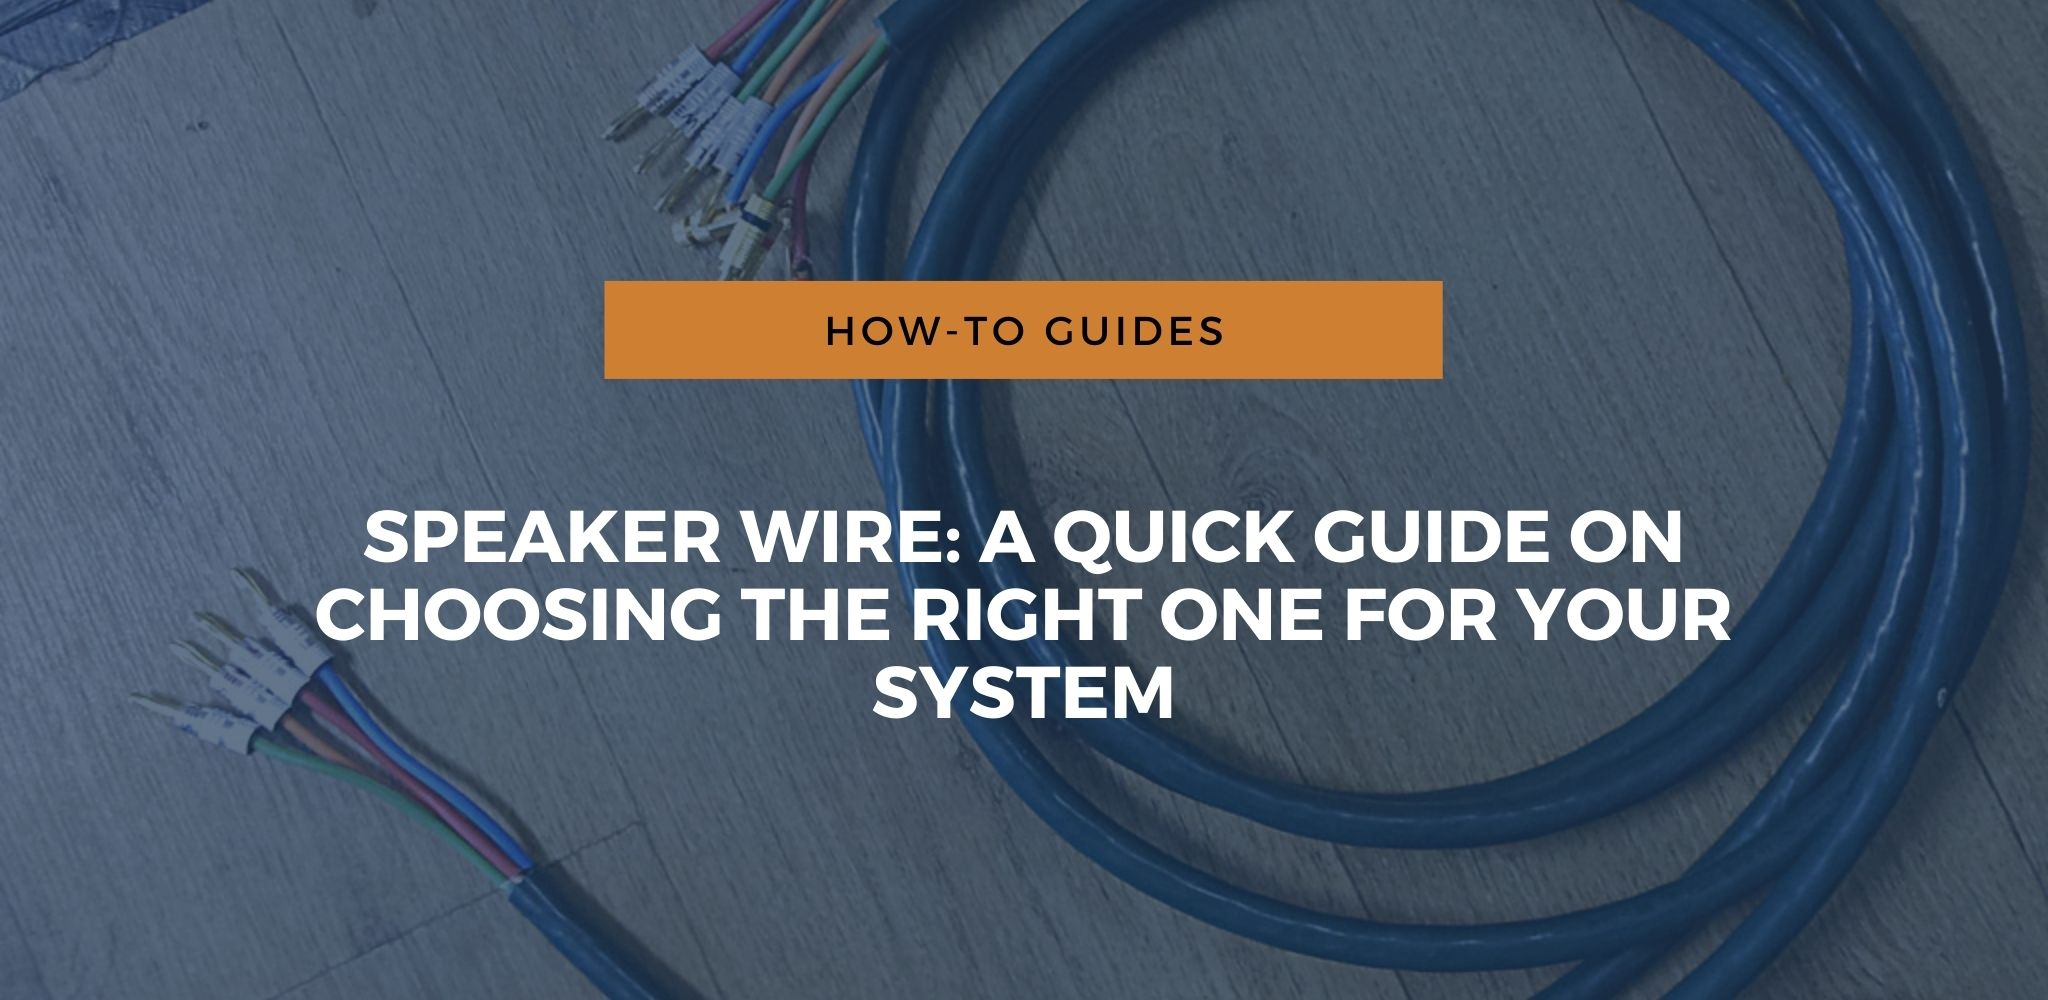 Speaker Wire Guide Featured Imaged